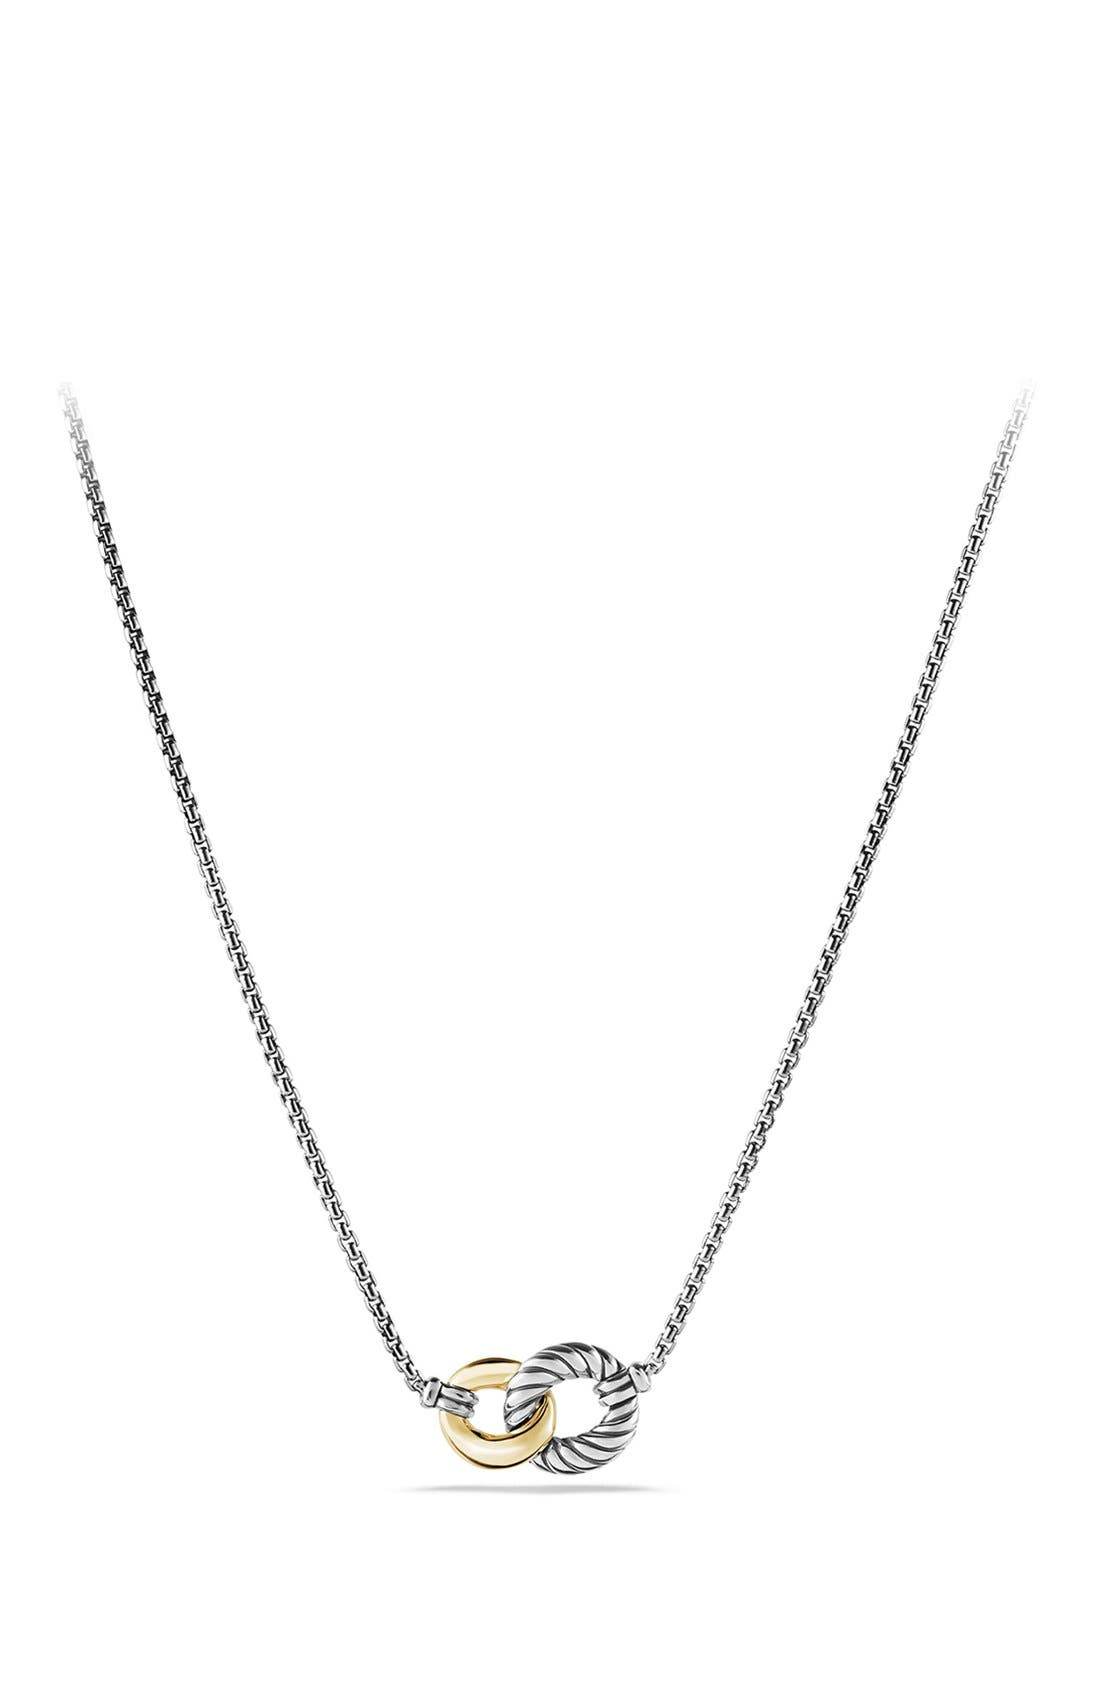 Main Image - David Yurman 'Belmont' Curb Link Necklace with 18K Gold